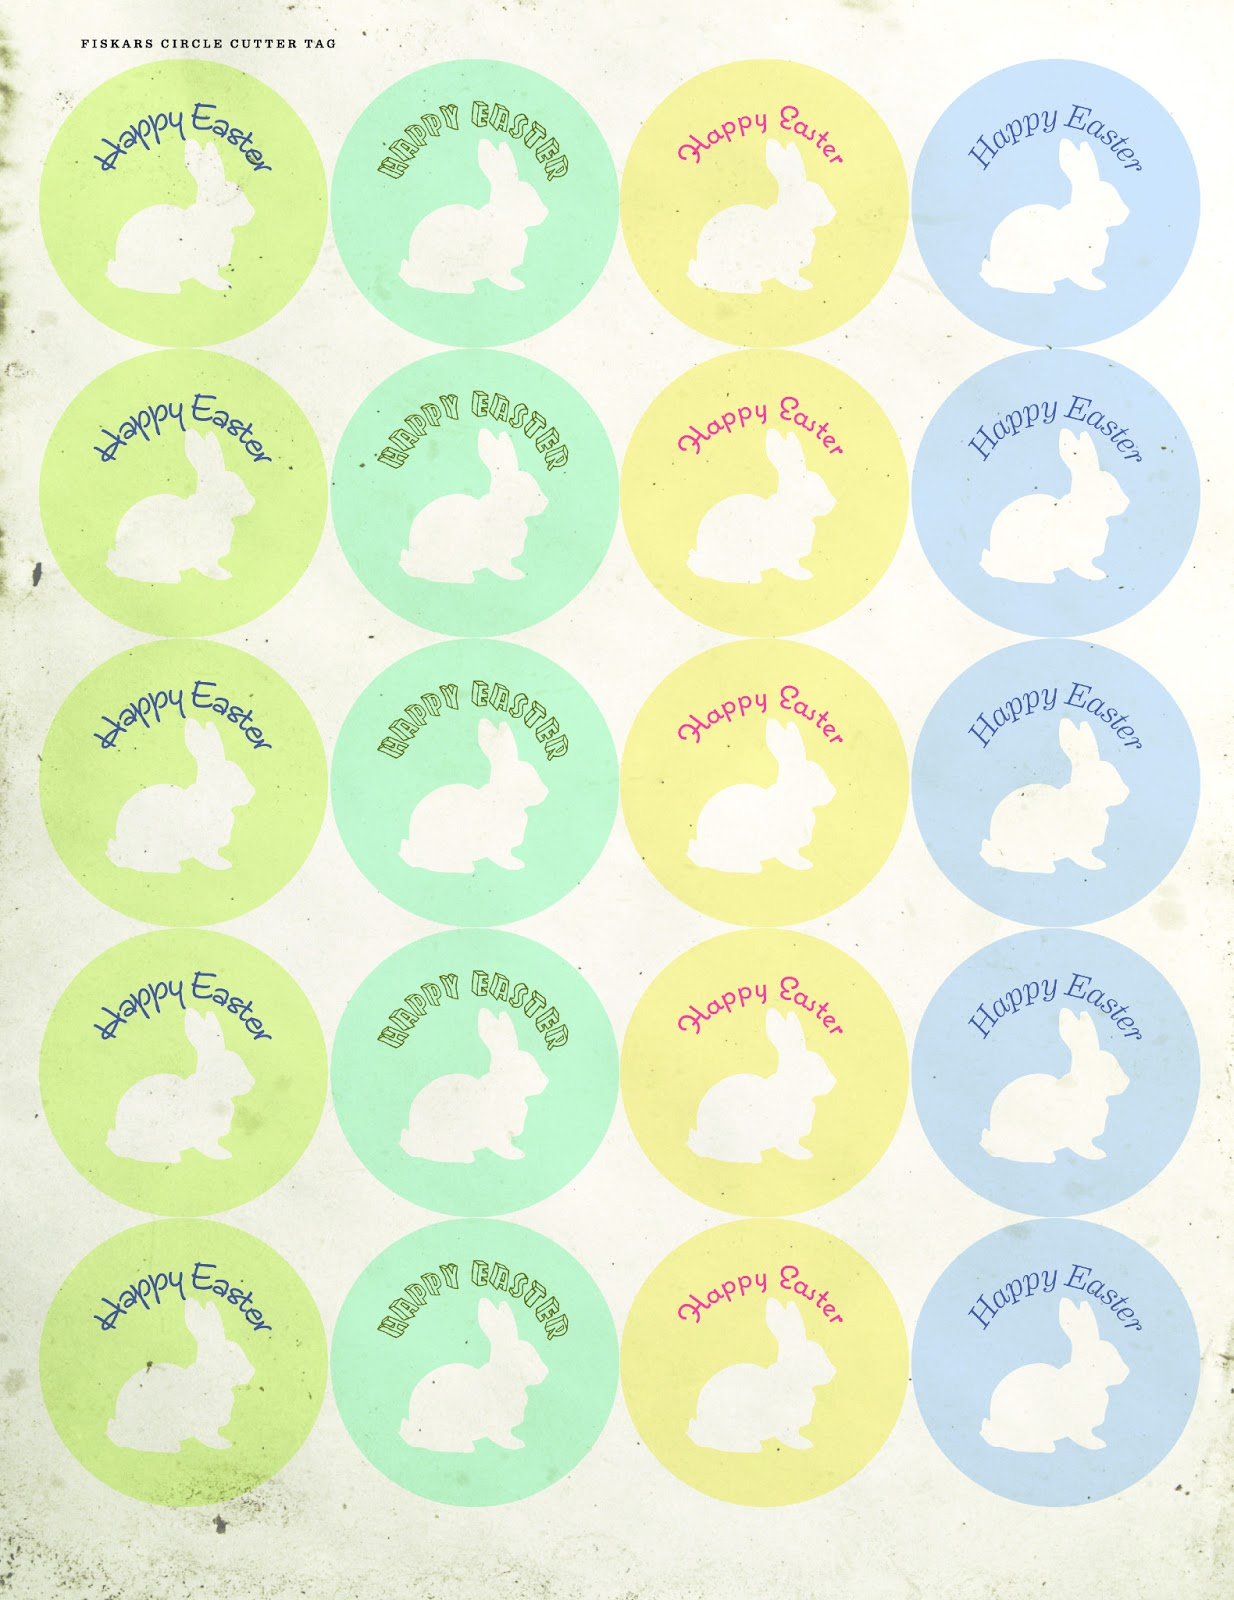 photo regarding Free Printable Easter Tags named victorious archive: EASTER TAG/STICKER Free of charge PRINTABLES